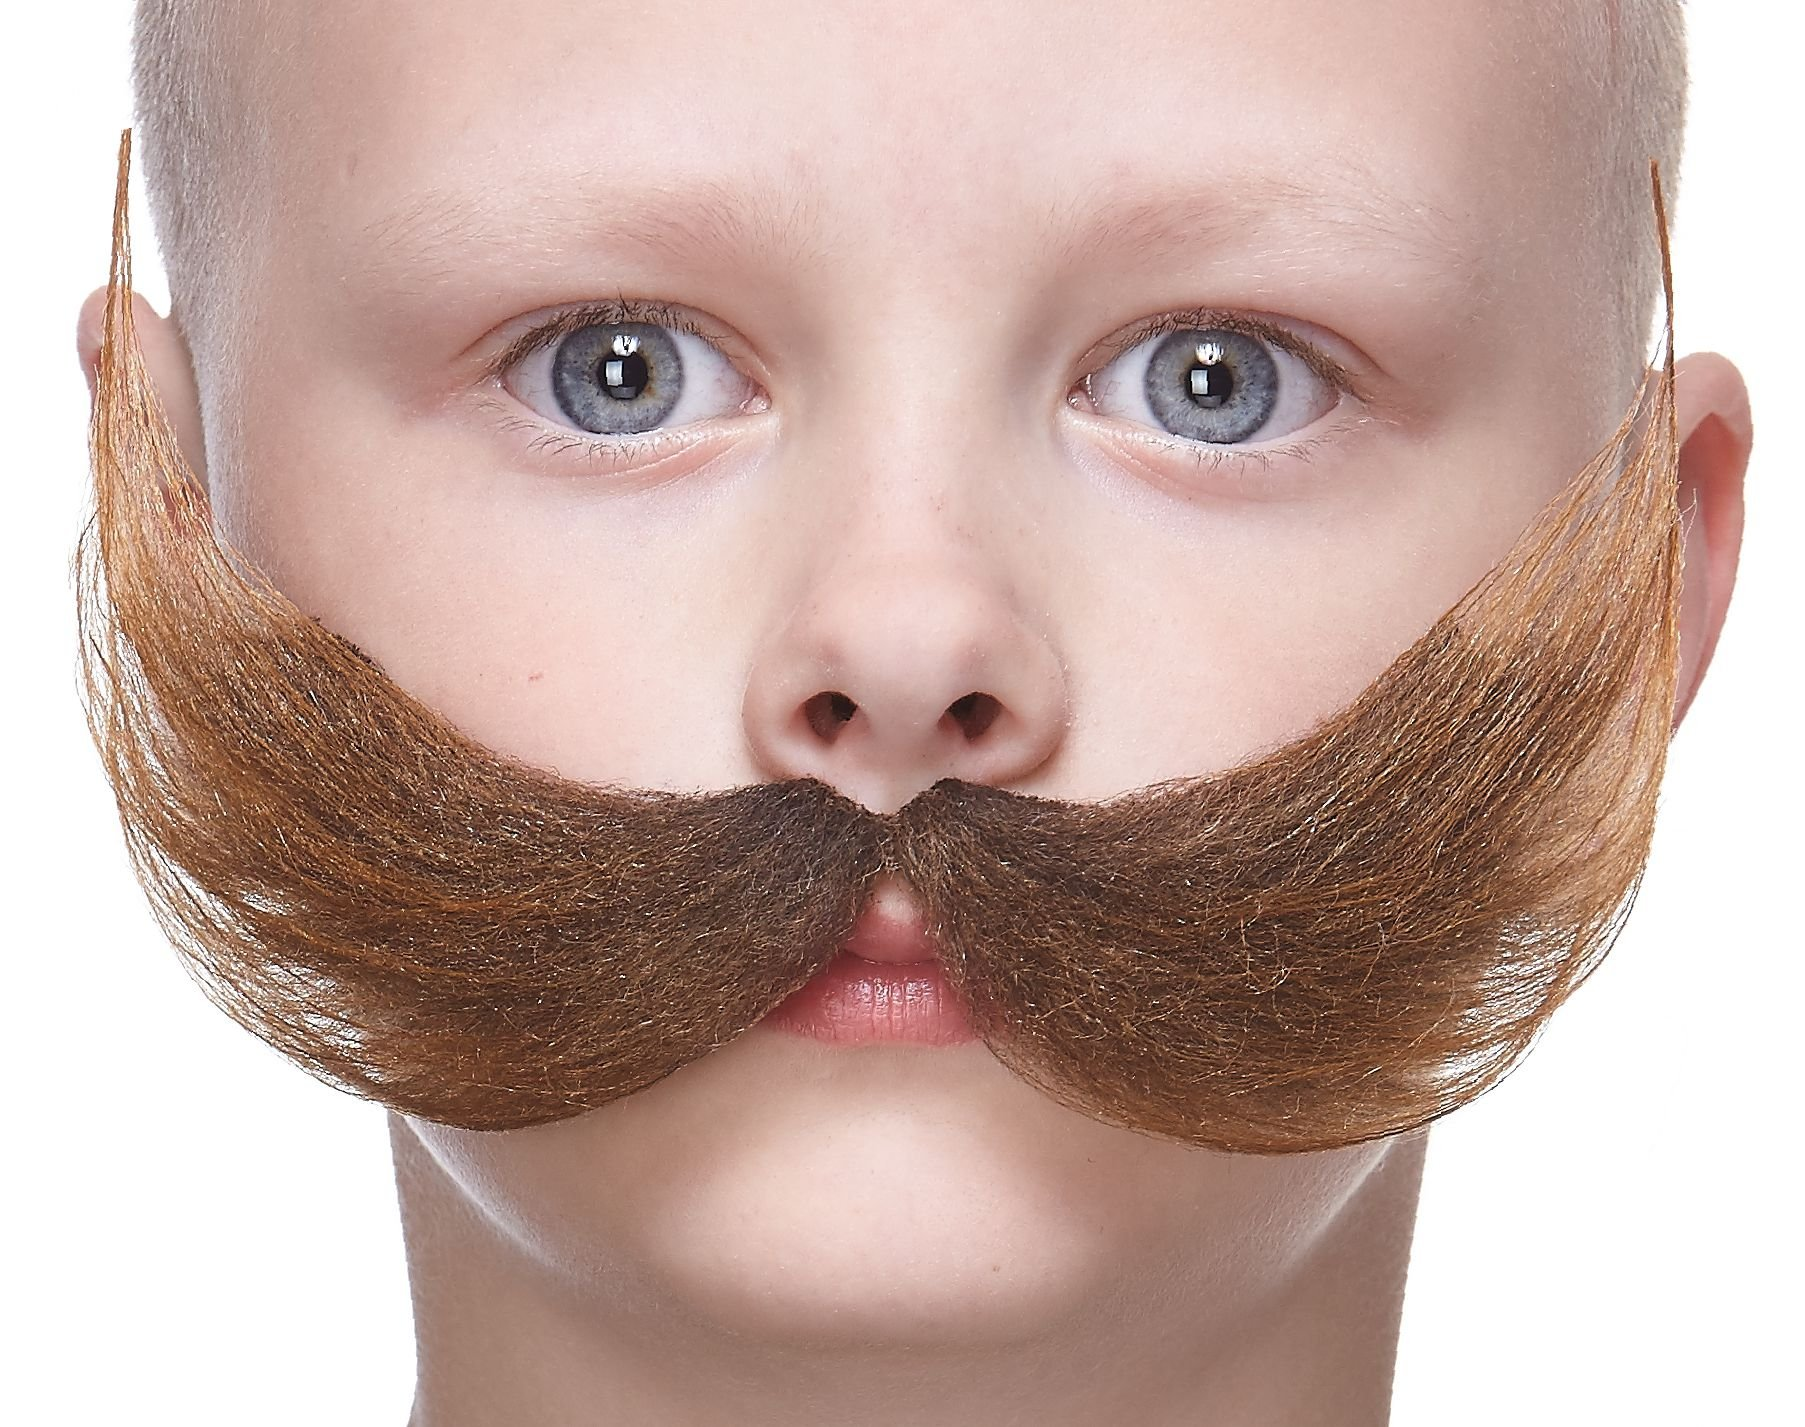 Mustaches Fake Mustache, Self Adhesive, Novelty, Small Fisherman's False Facial Hair, Costume Accessory for Kids